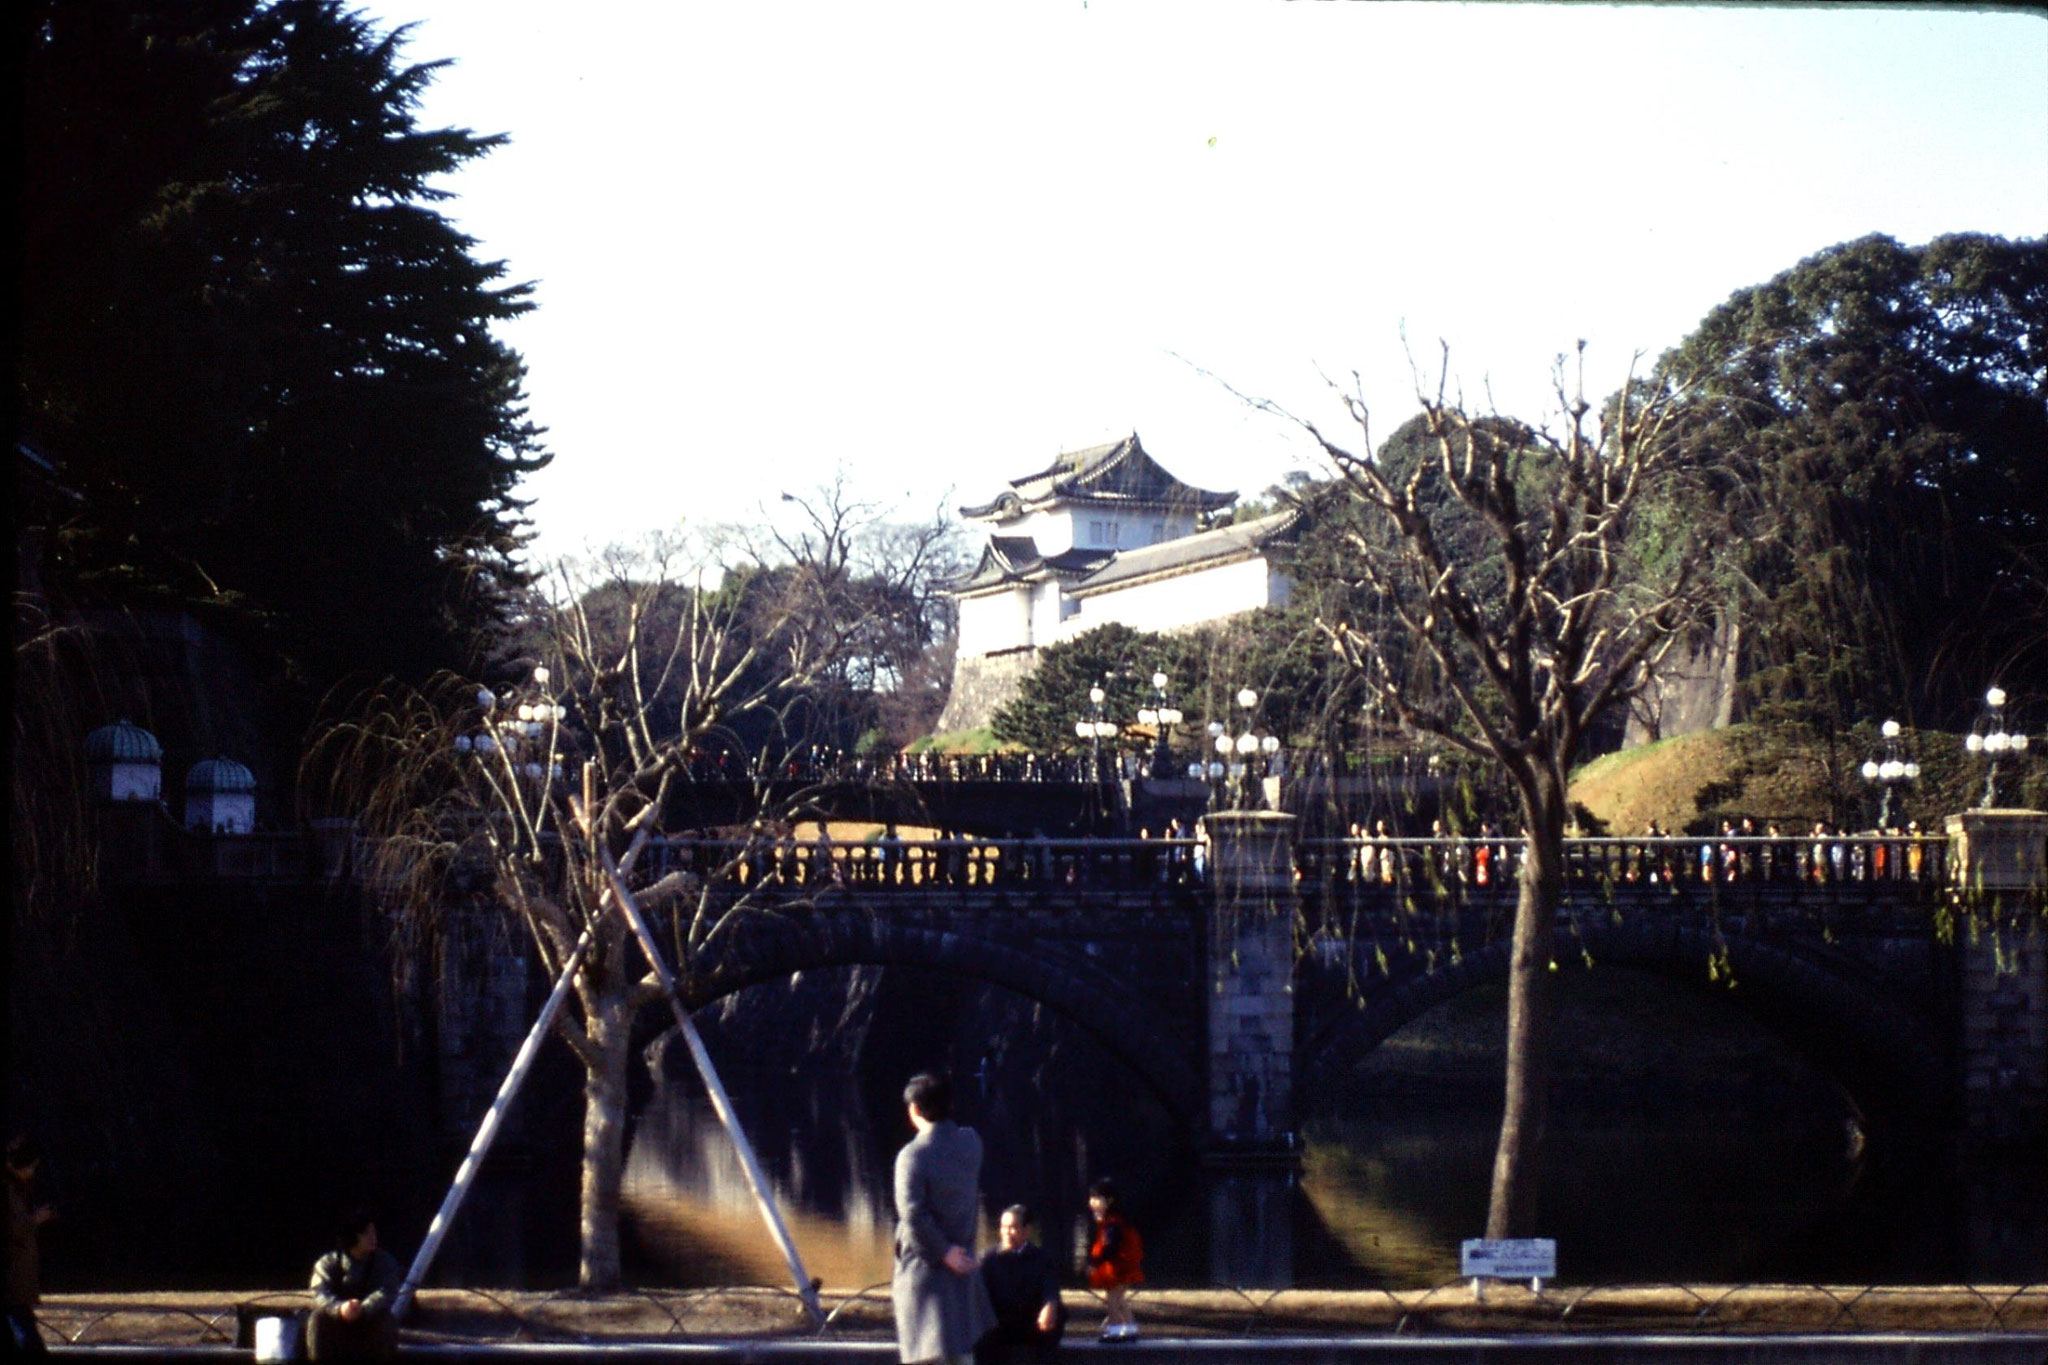 2/1/1989: 27: Imperial Palace